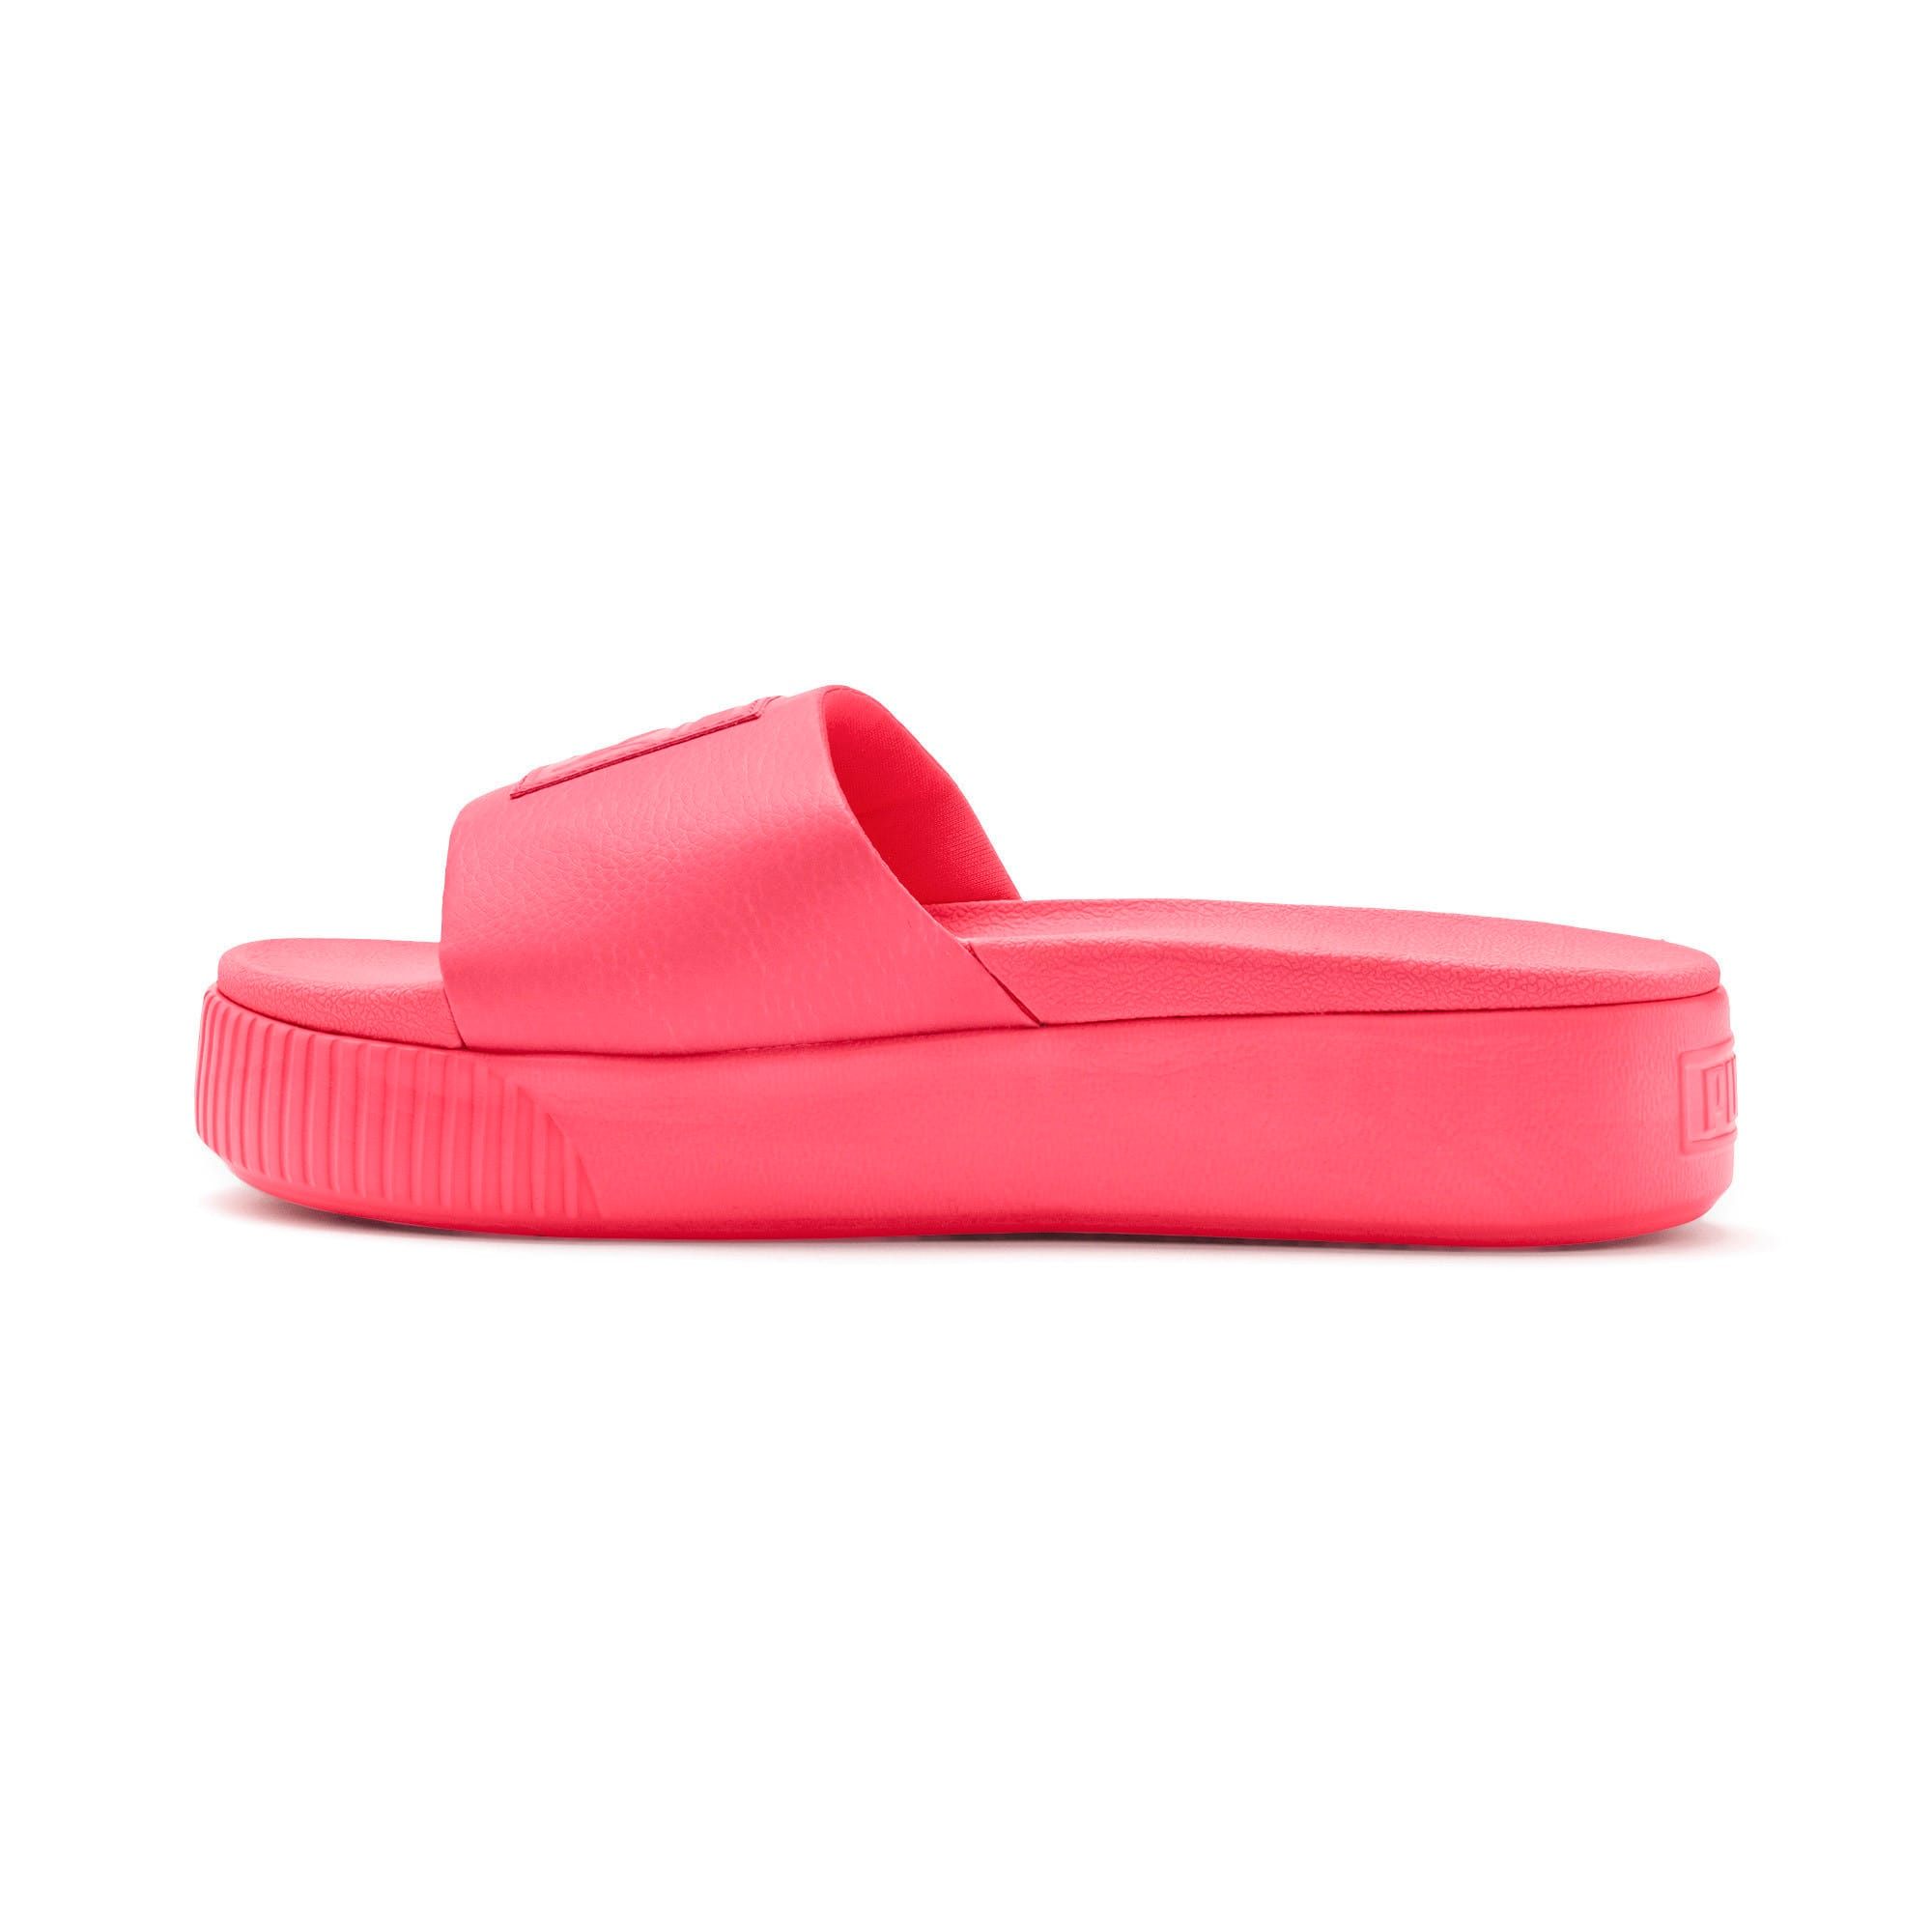 Thumbnail 1 of Platform Slide Women's Sandals, Pink Alert-Pink Alert, medium